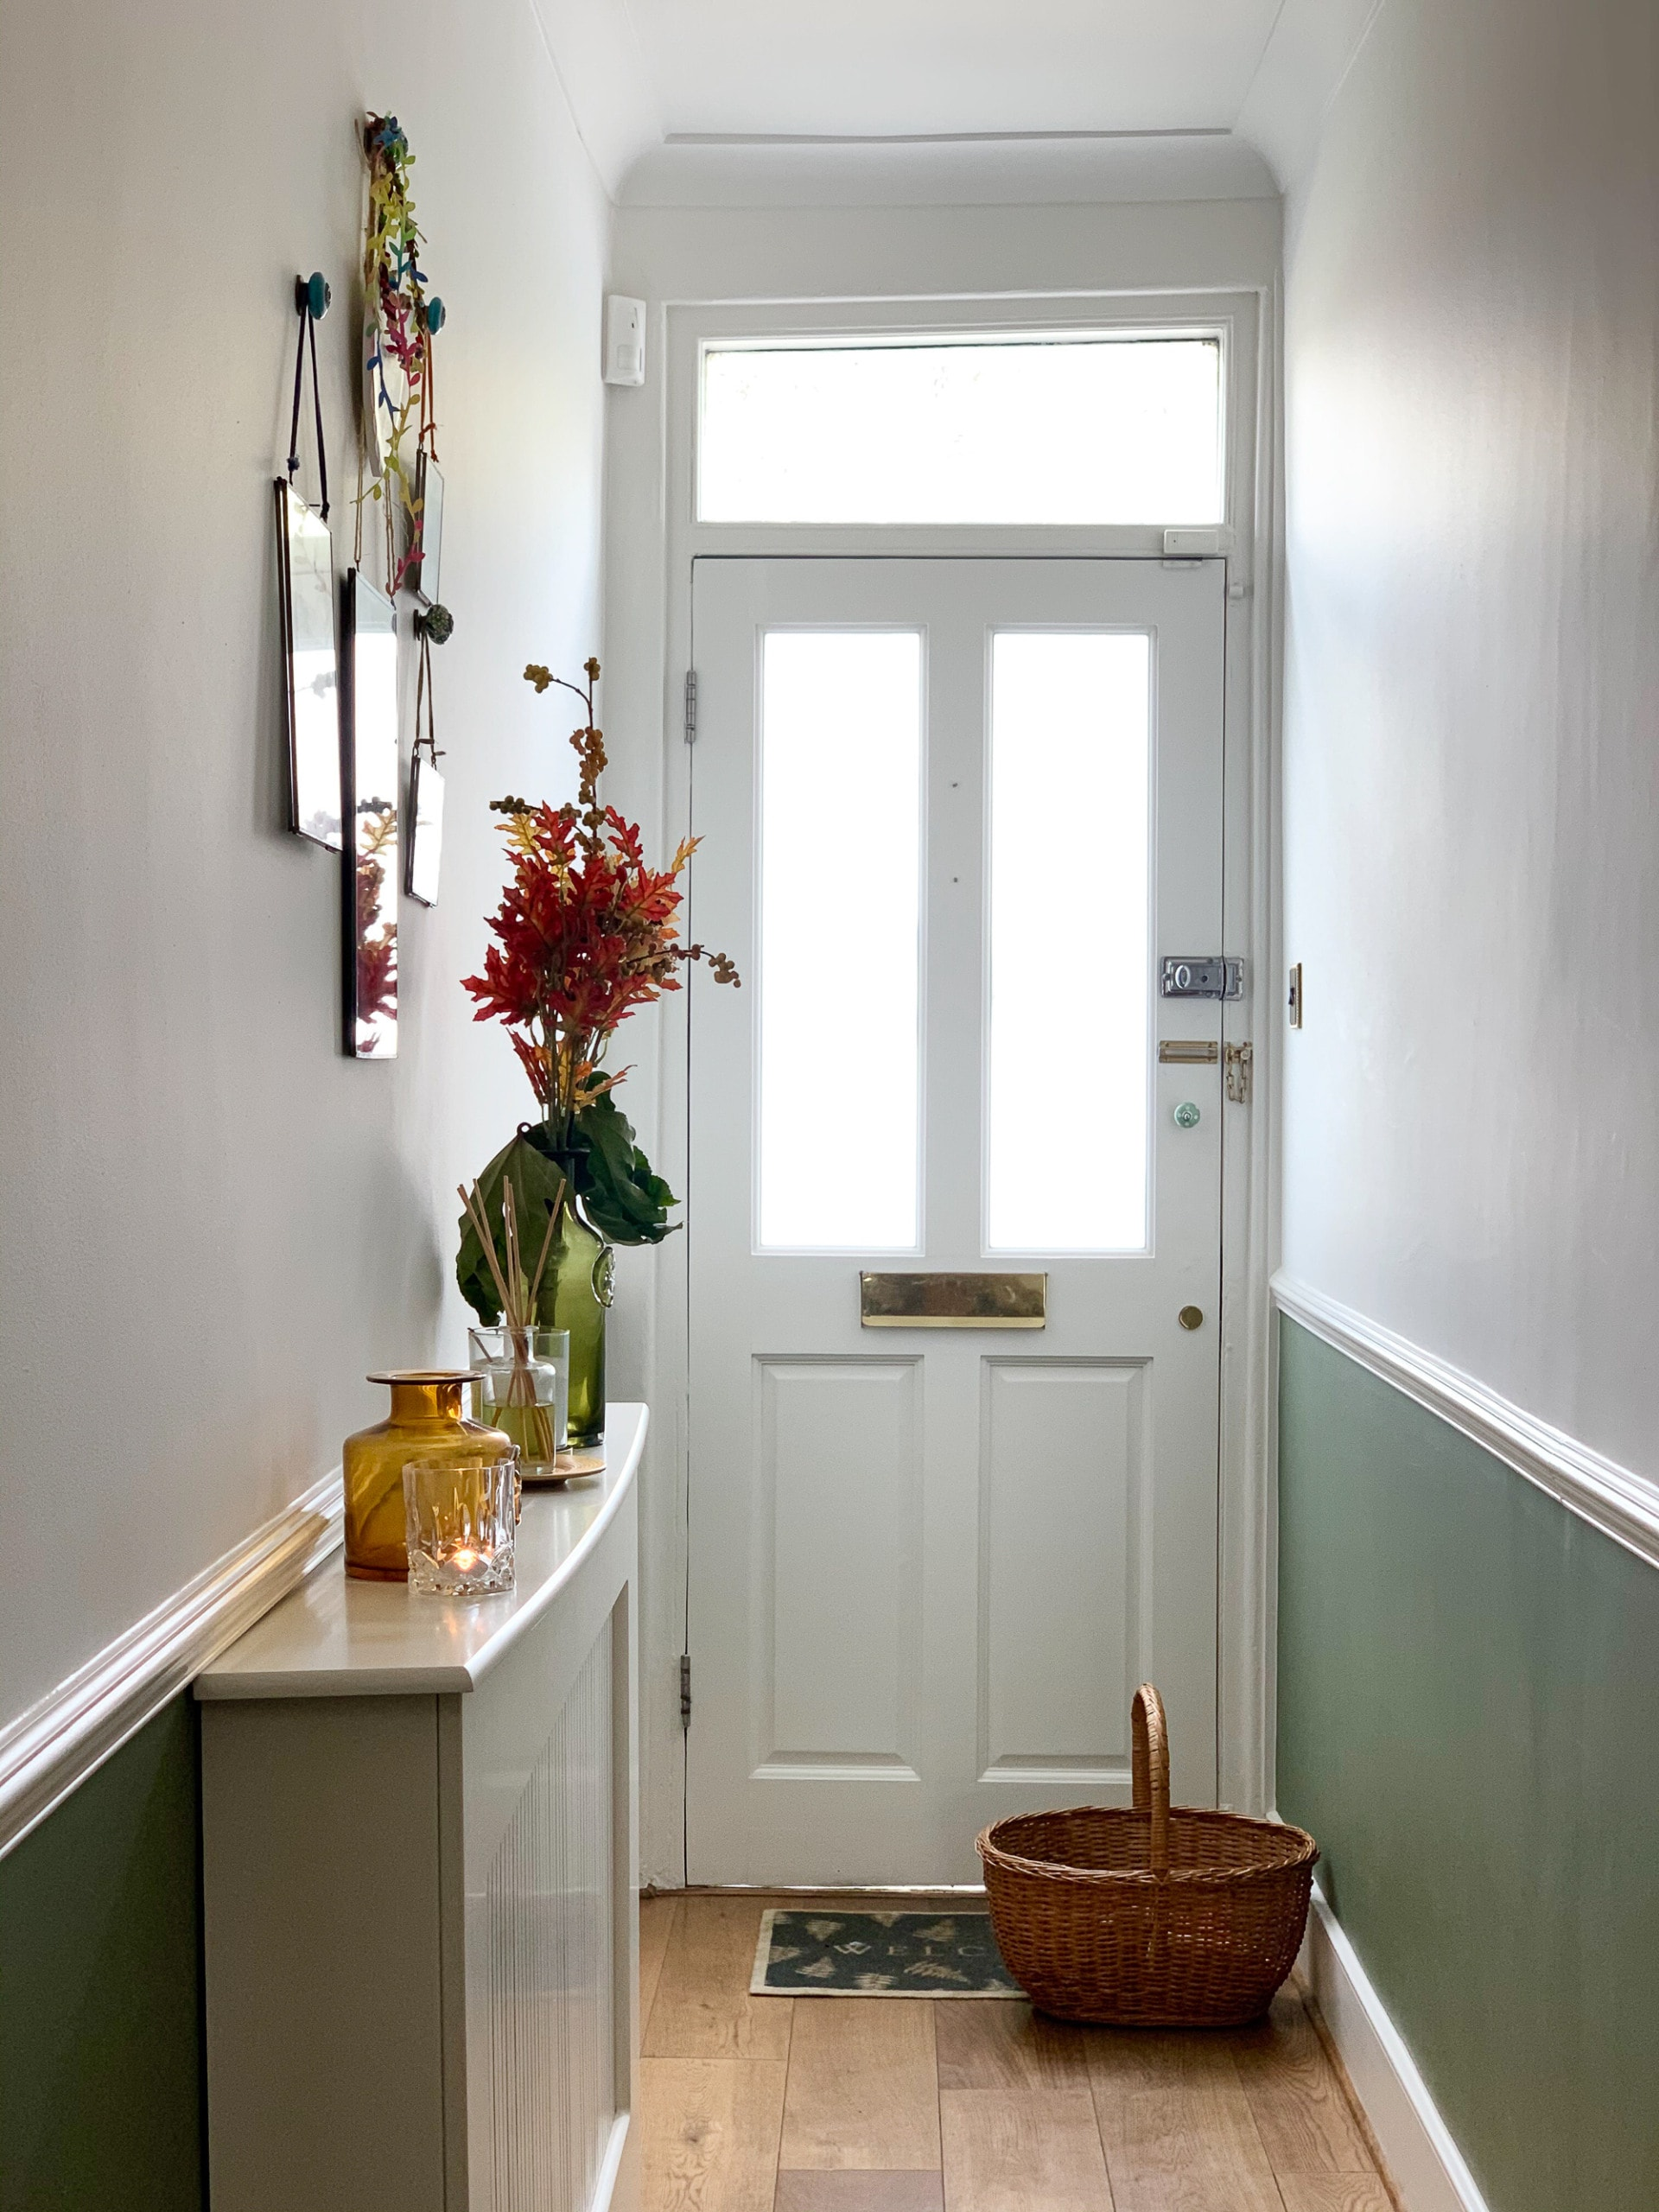 Entryway into a home in the UK